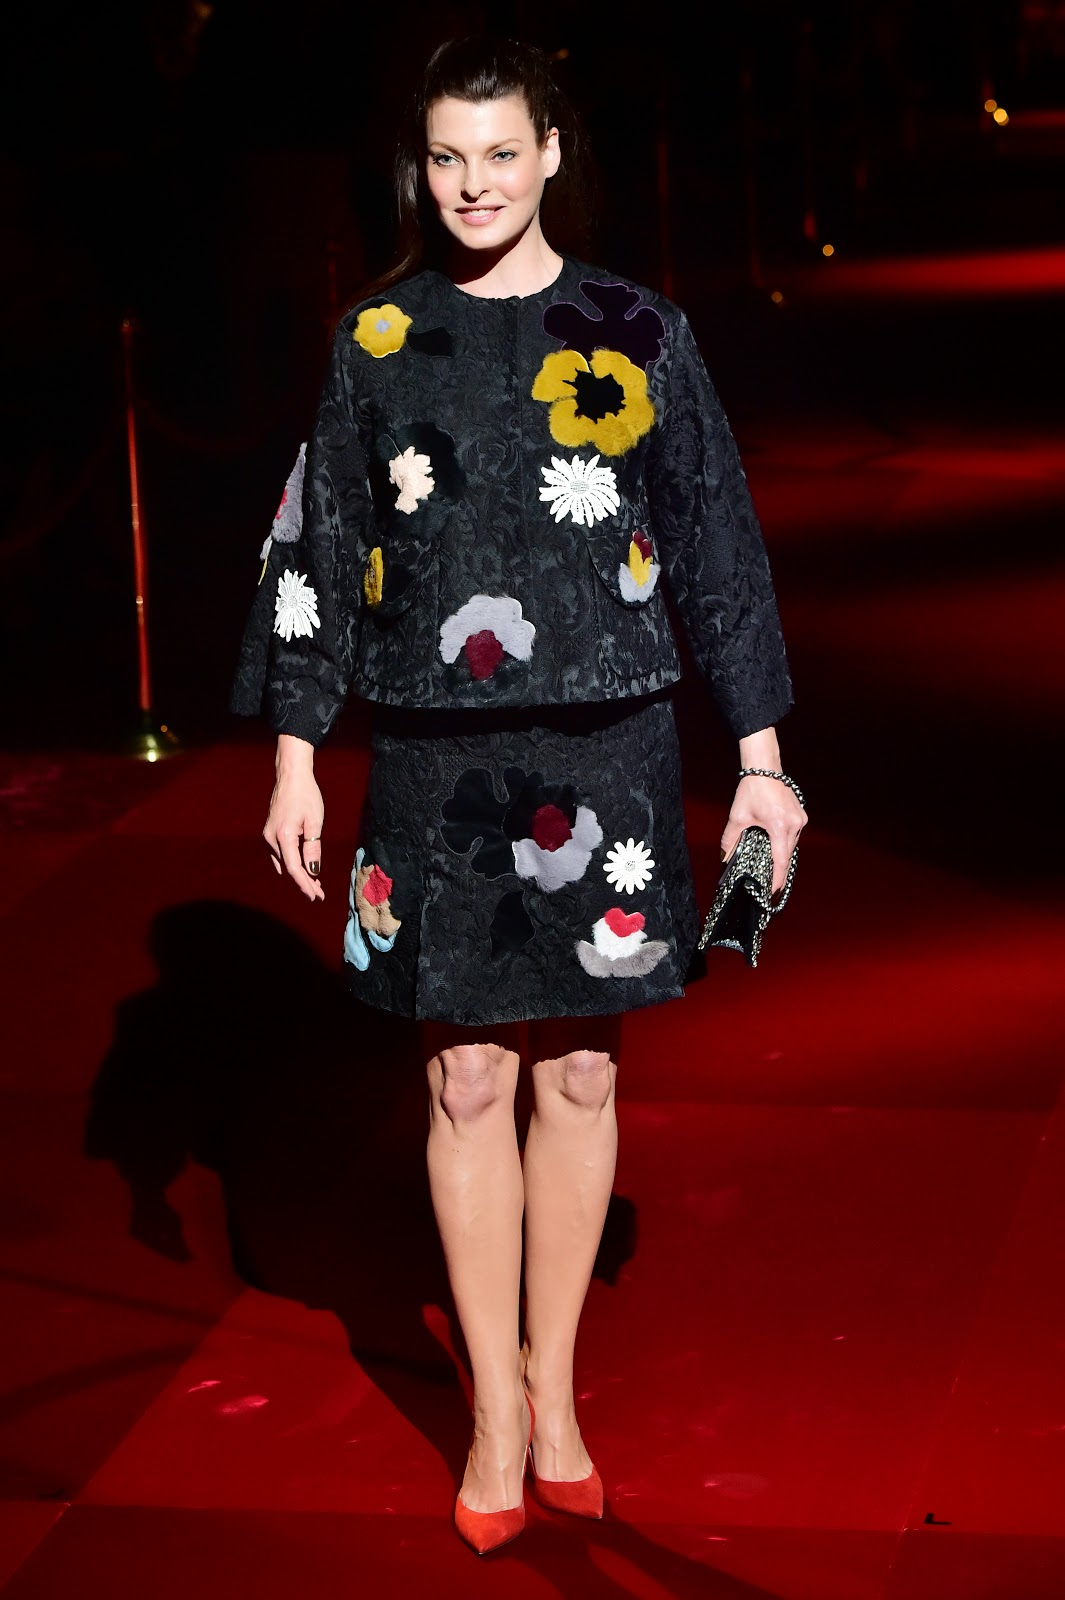 Milan Fashion Week 2015 - Dolce & Gabbana Collection in Pictures